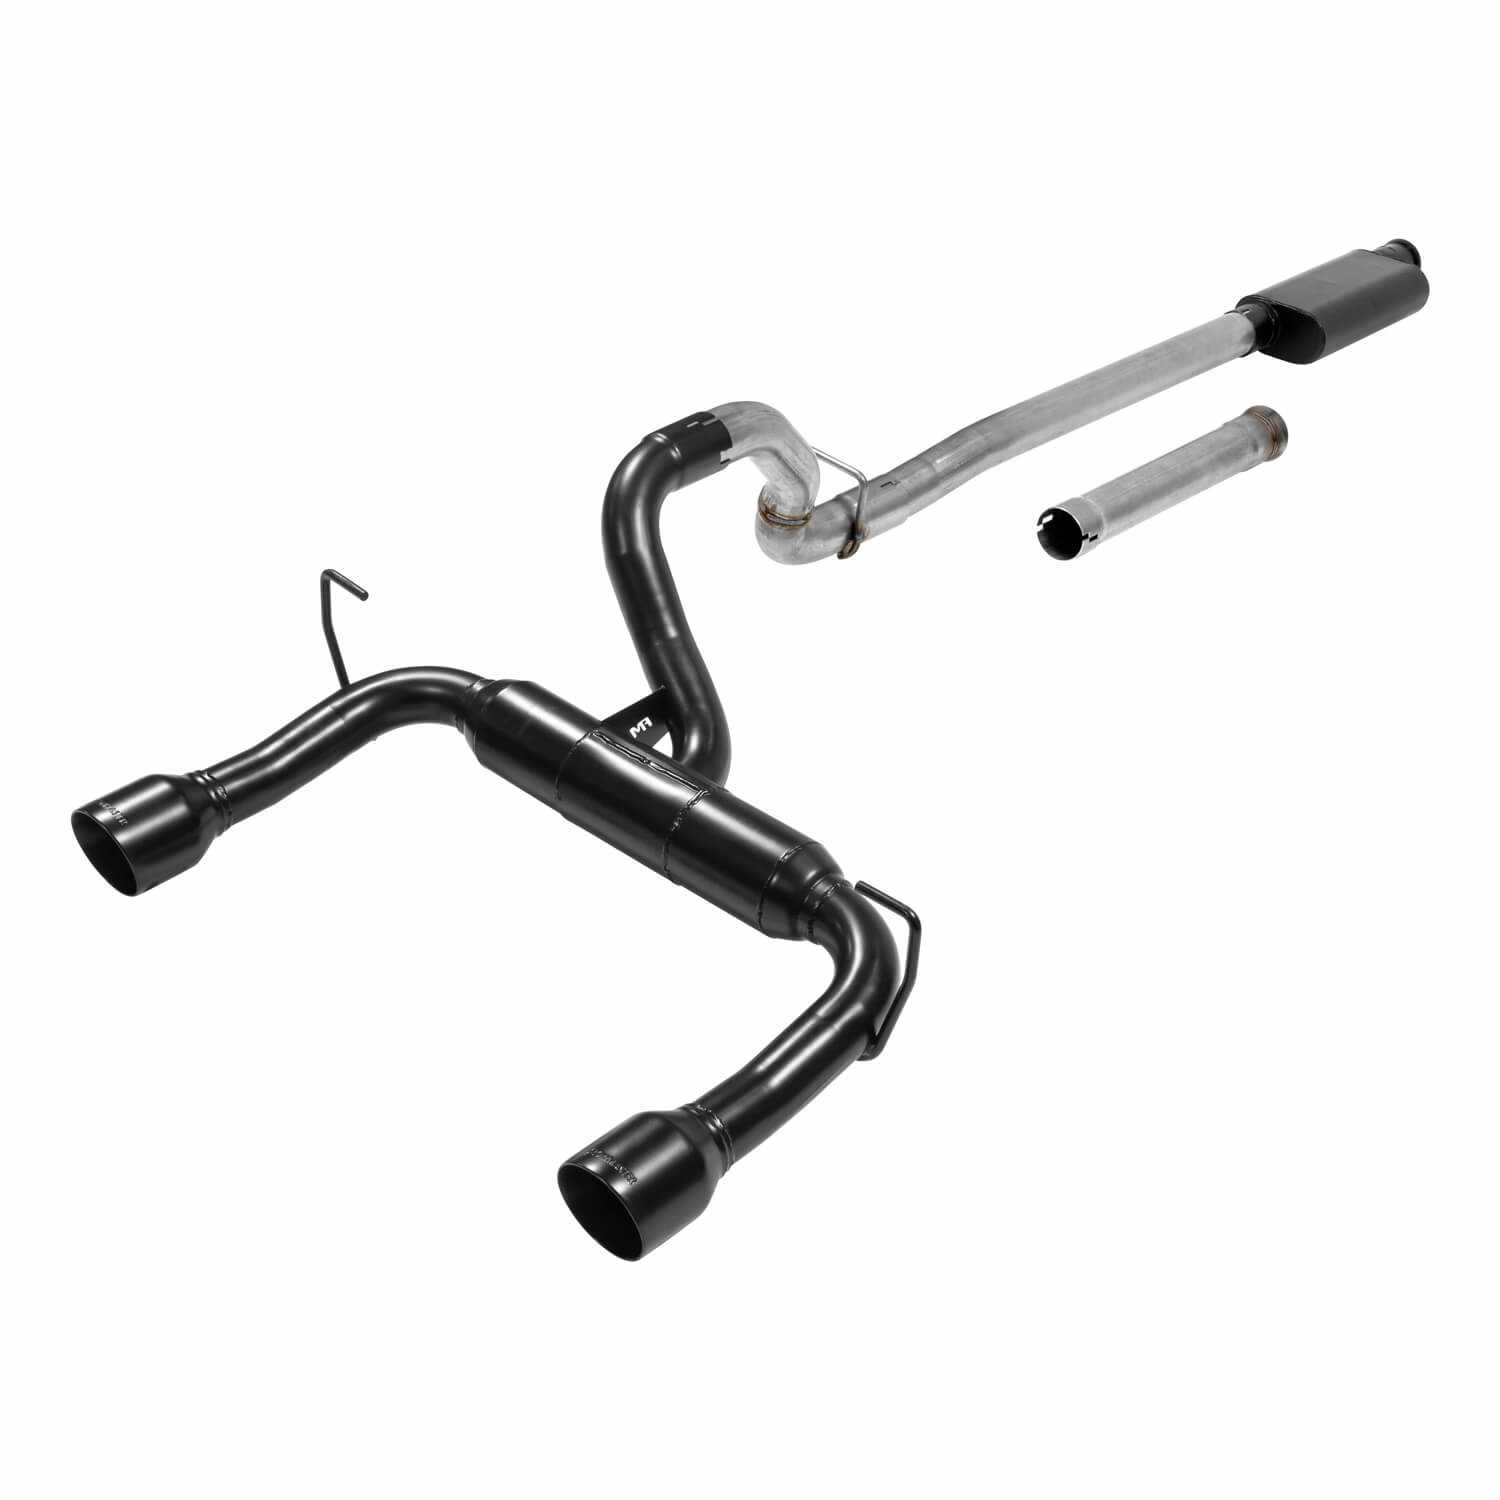 817844 Flowmaster Outlaw Series™ Cat Back Exhaust System